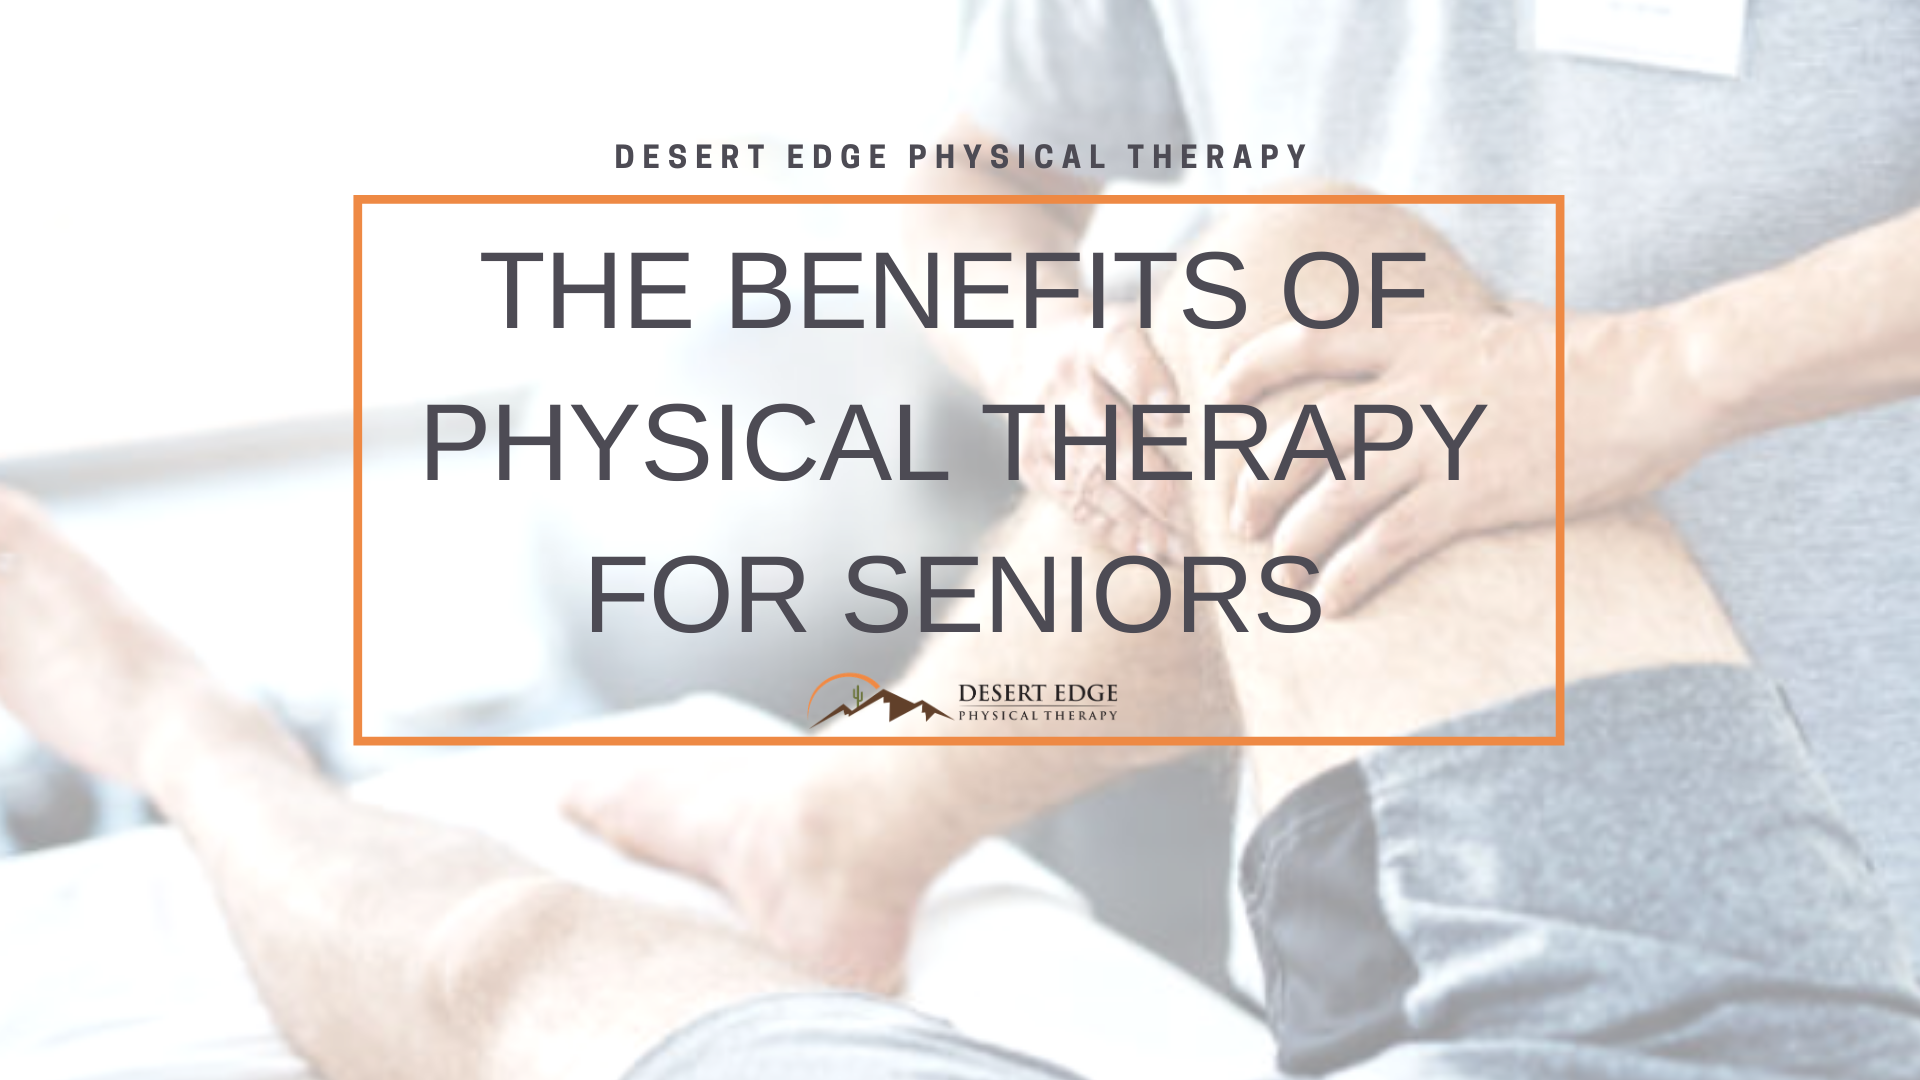 Benefits of Physical Therapy for Seniors